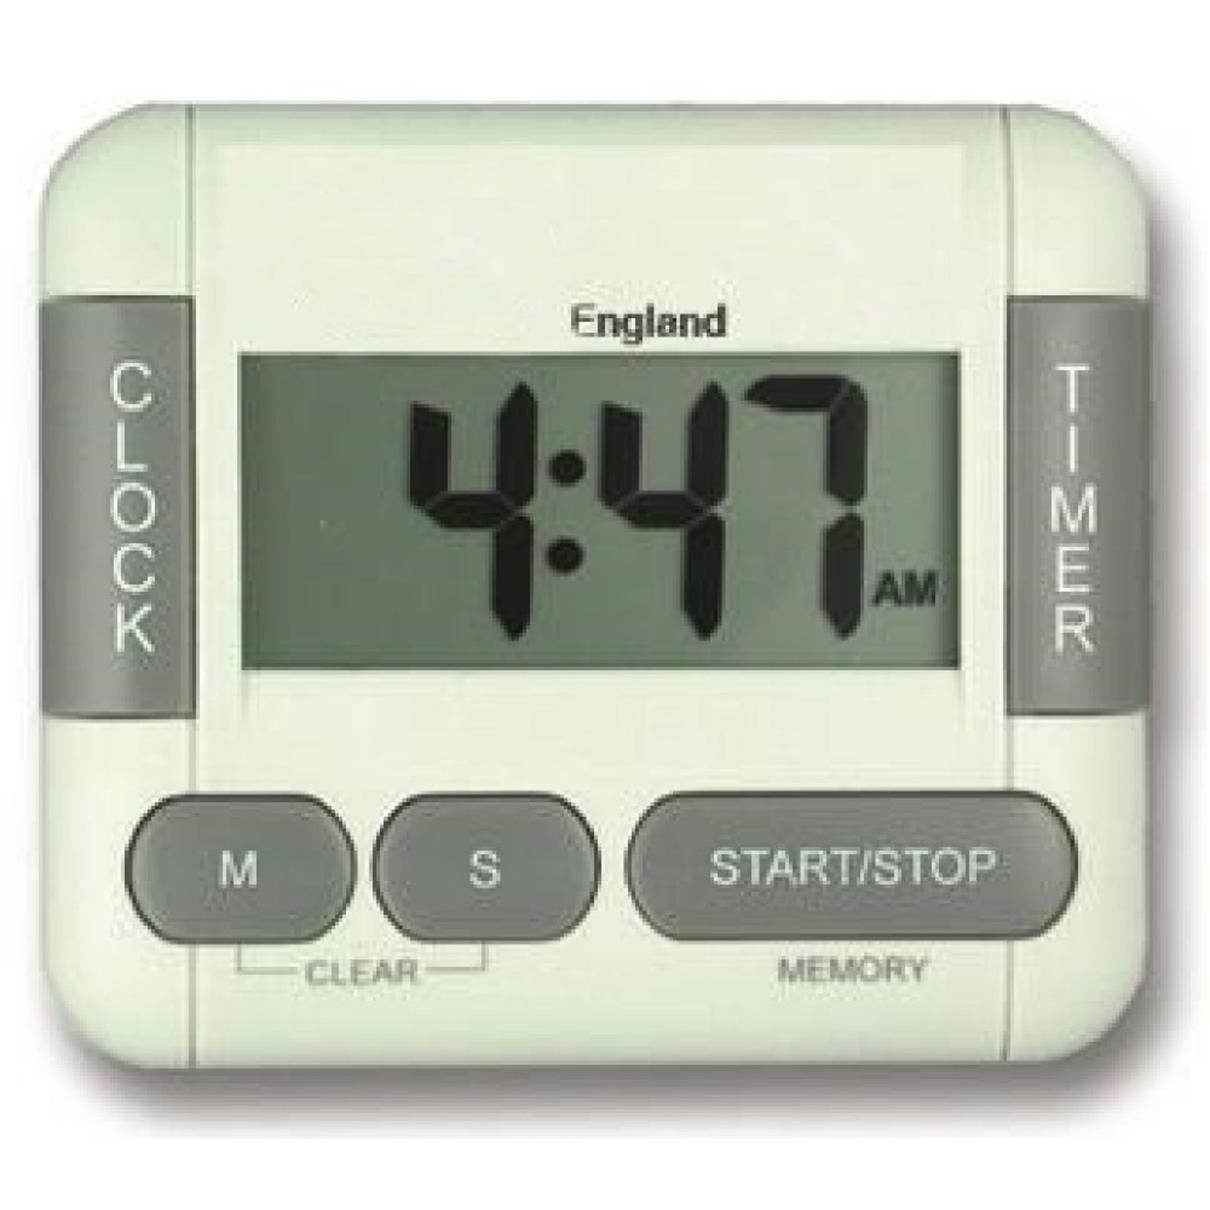 Beau TIMER DIGITAL KITCHEN TIMER AND CLOCK